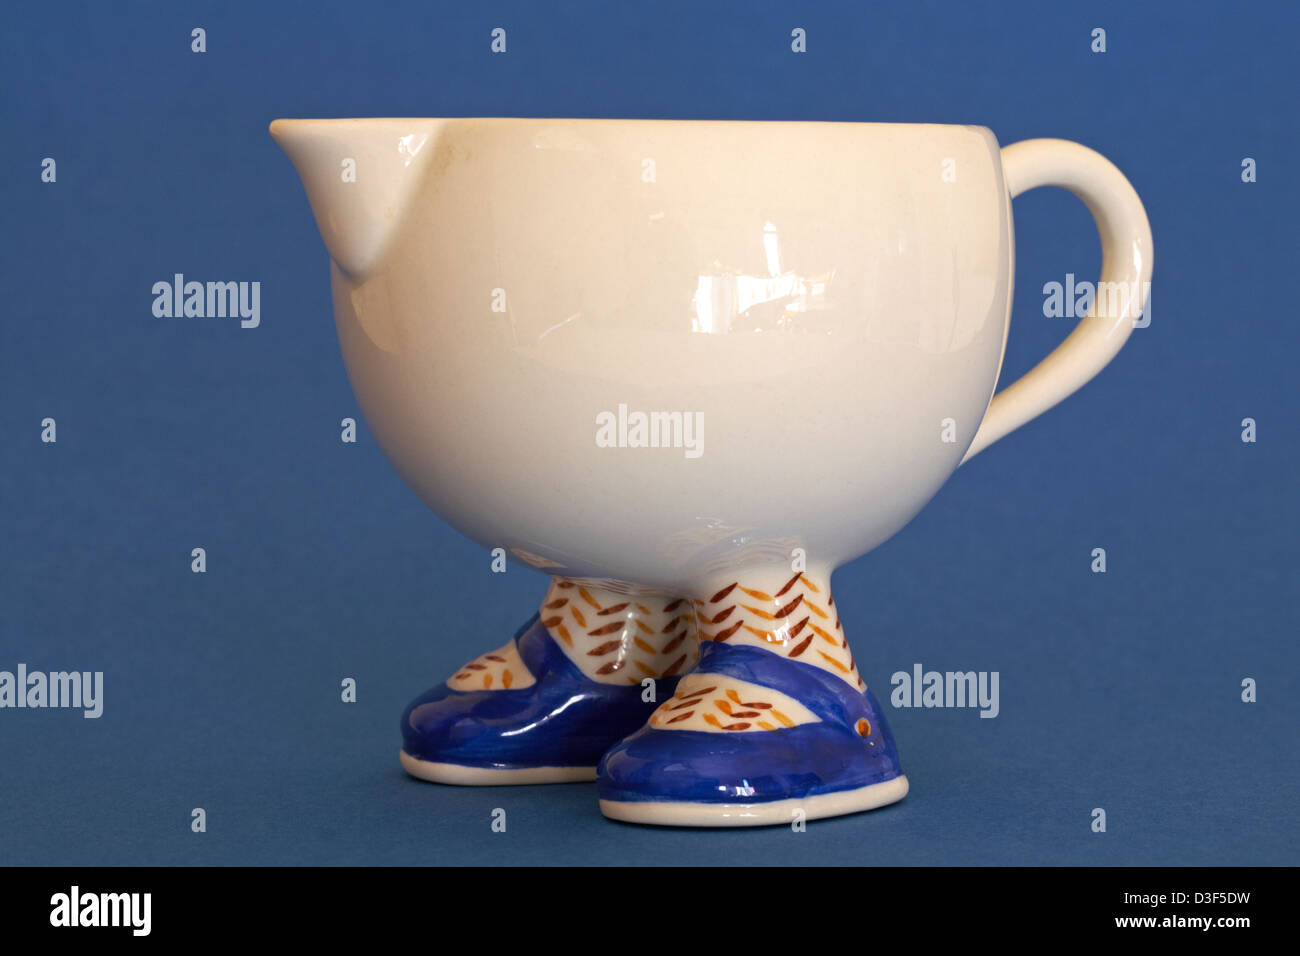 cream coloured jug with feet and shoes isolated on blue background Stock Photo